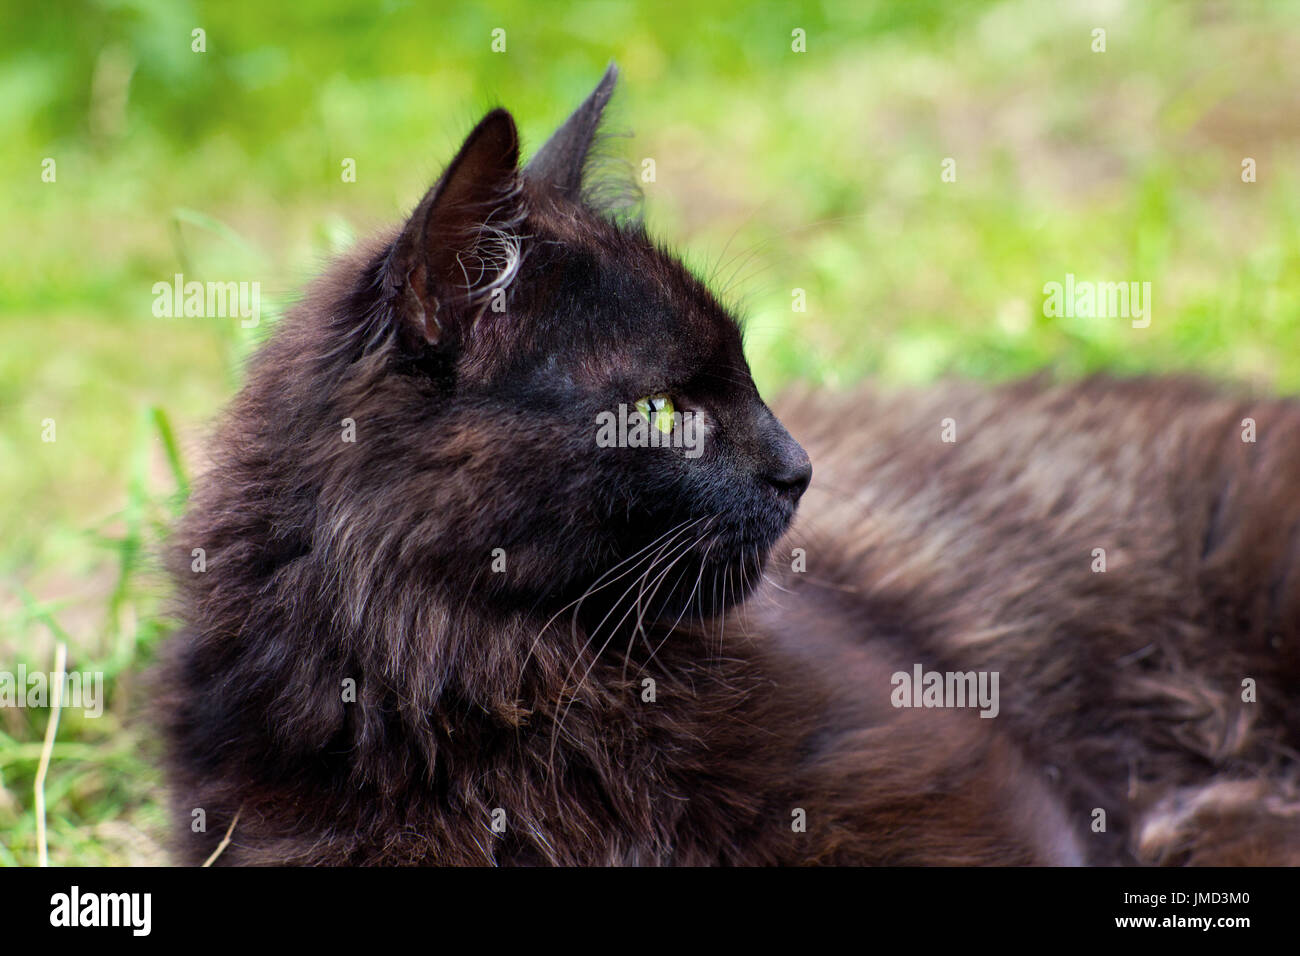 Close-up portrait of dark brown cat outdoors Stock Photo